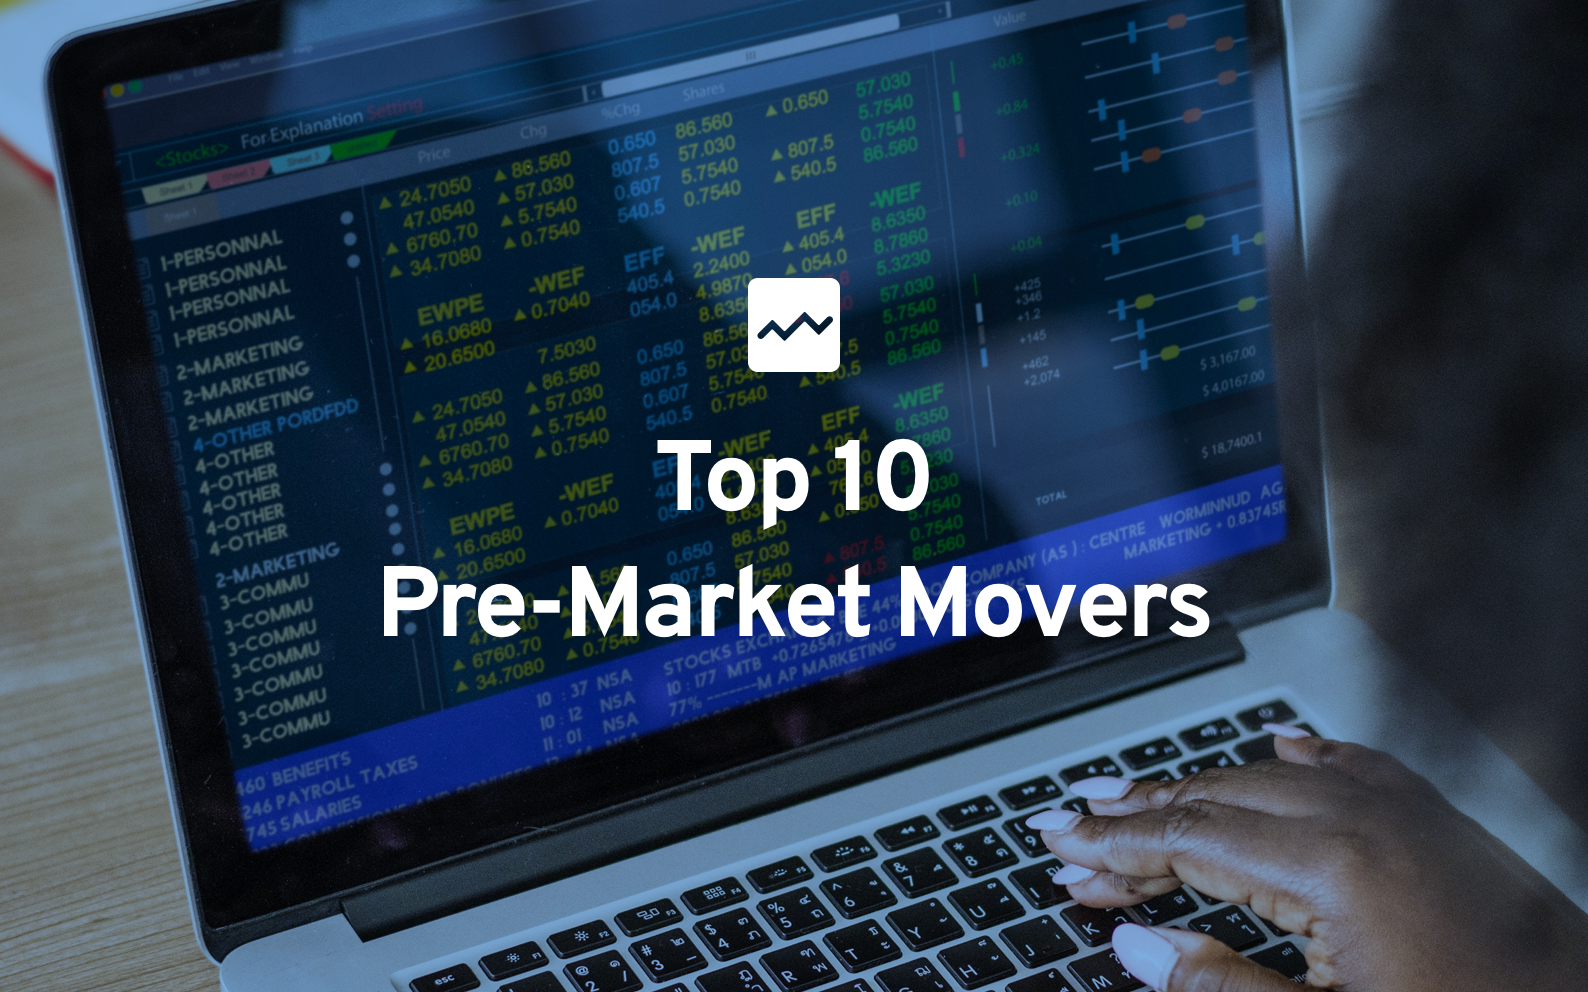 Top 10 Market Movers in Pre-Market Session